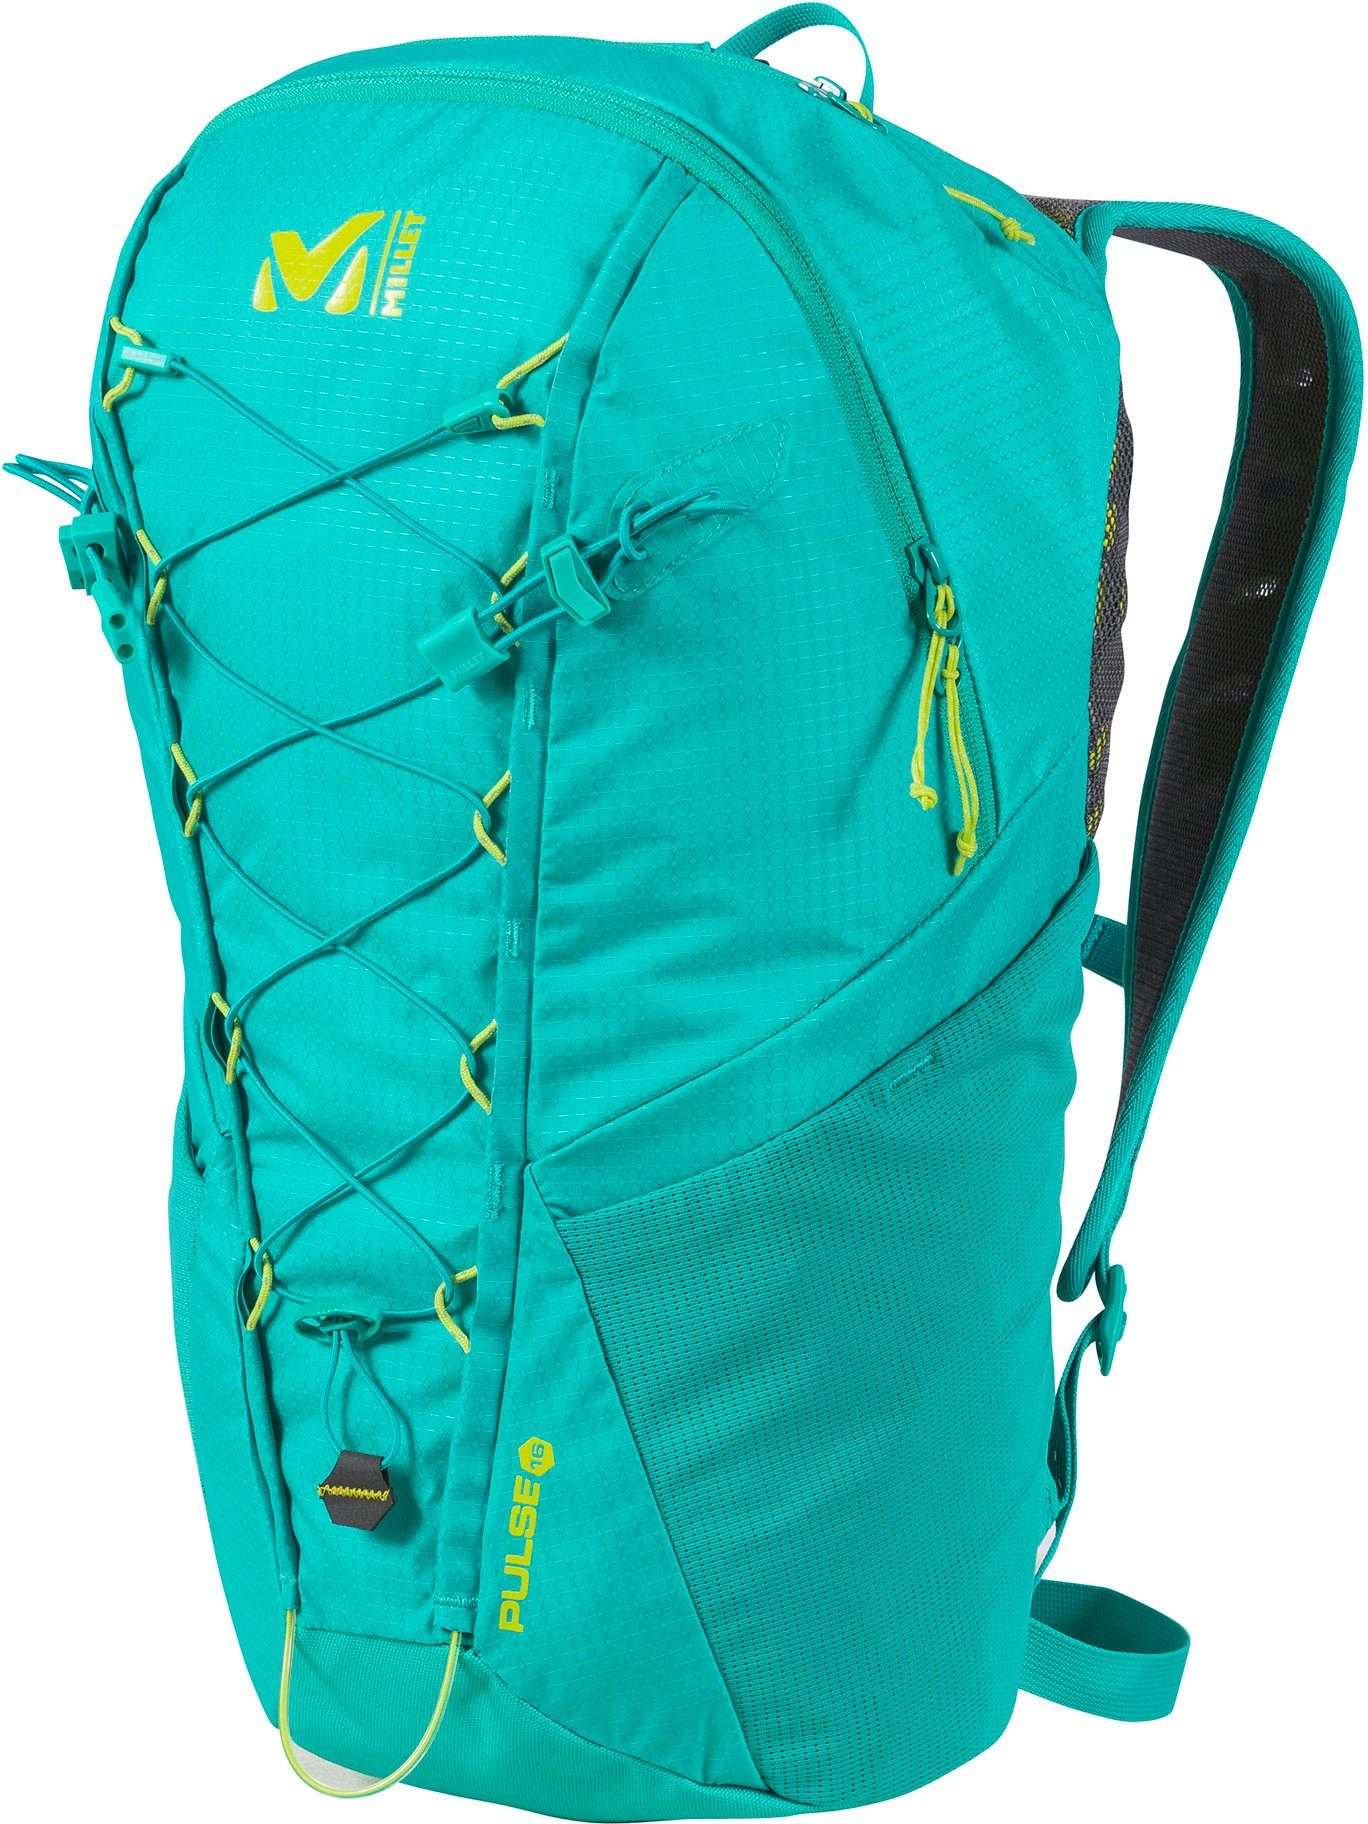 Millet Wanderrucksack »Pulse 16 Backpack«